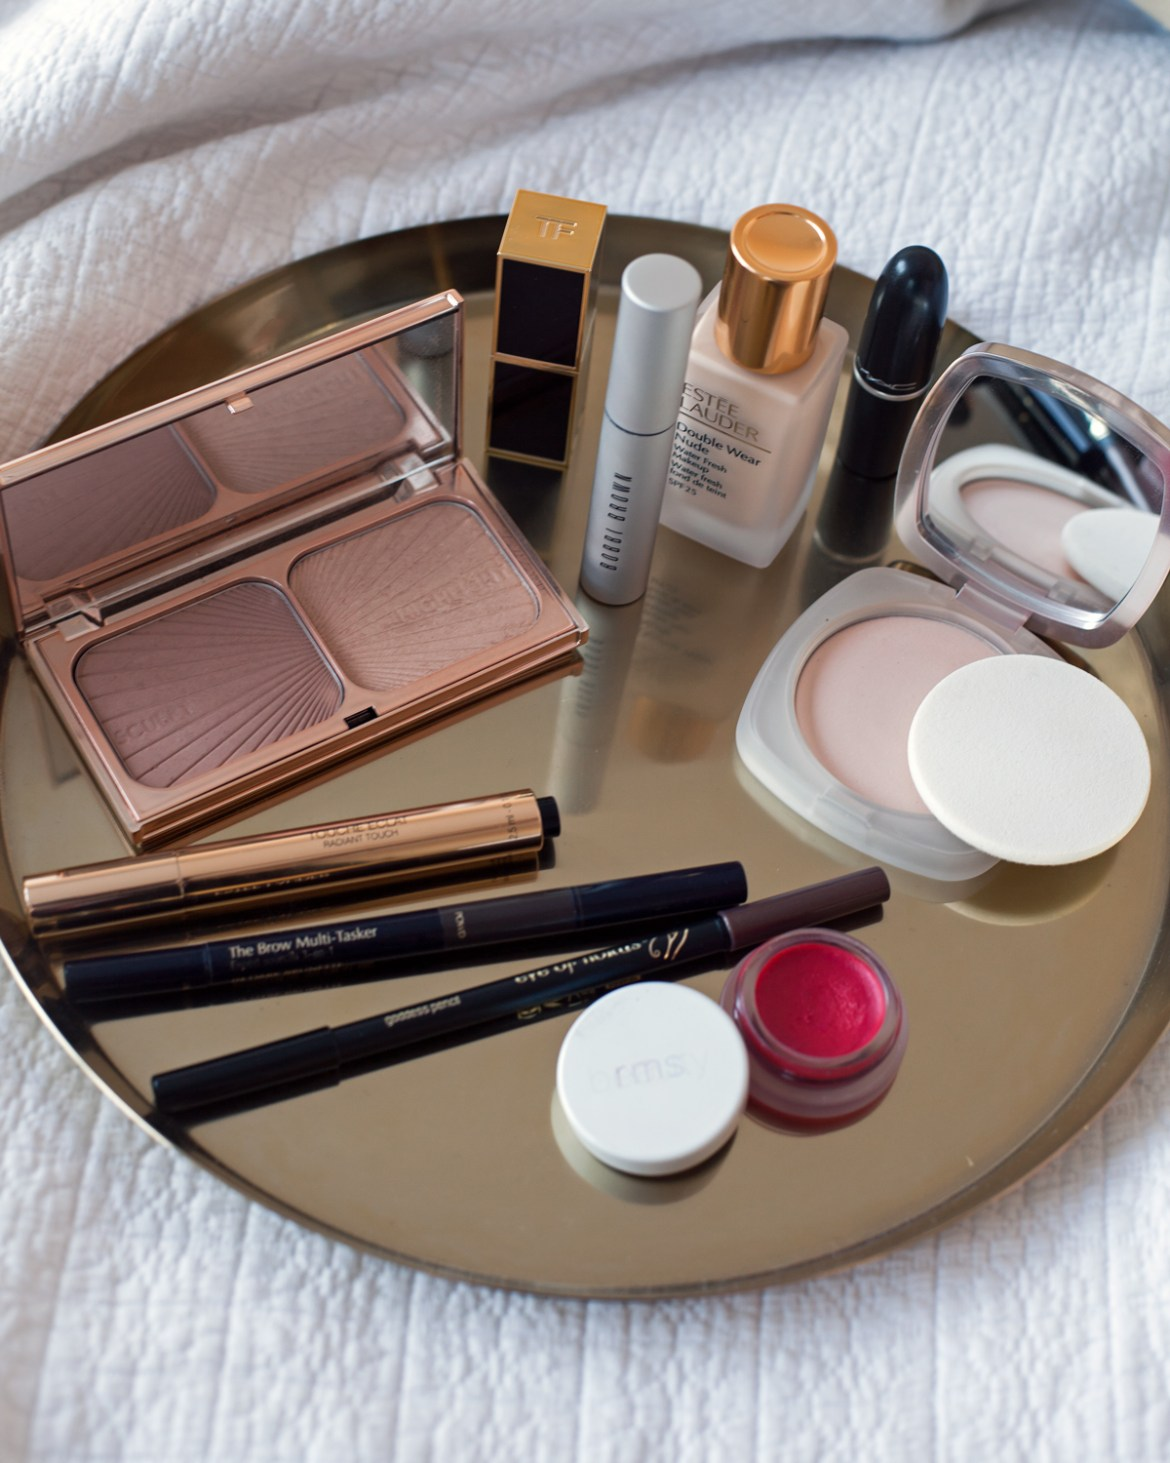 beauty blog Inspiring Wit best beauty products La Mer Eve Lom go-to skincare Bobbi Brown rms MAC